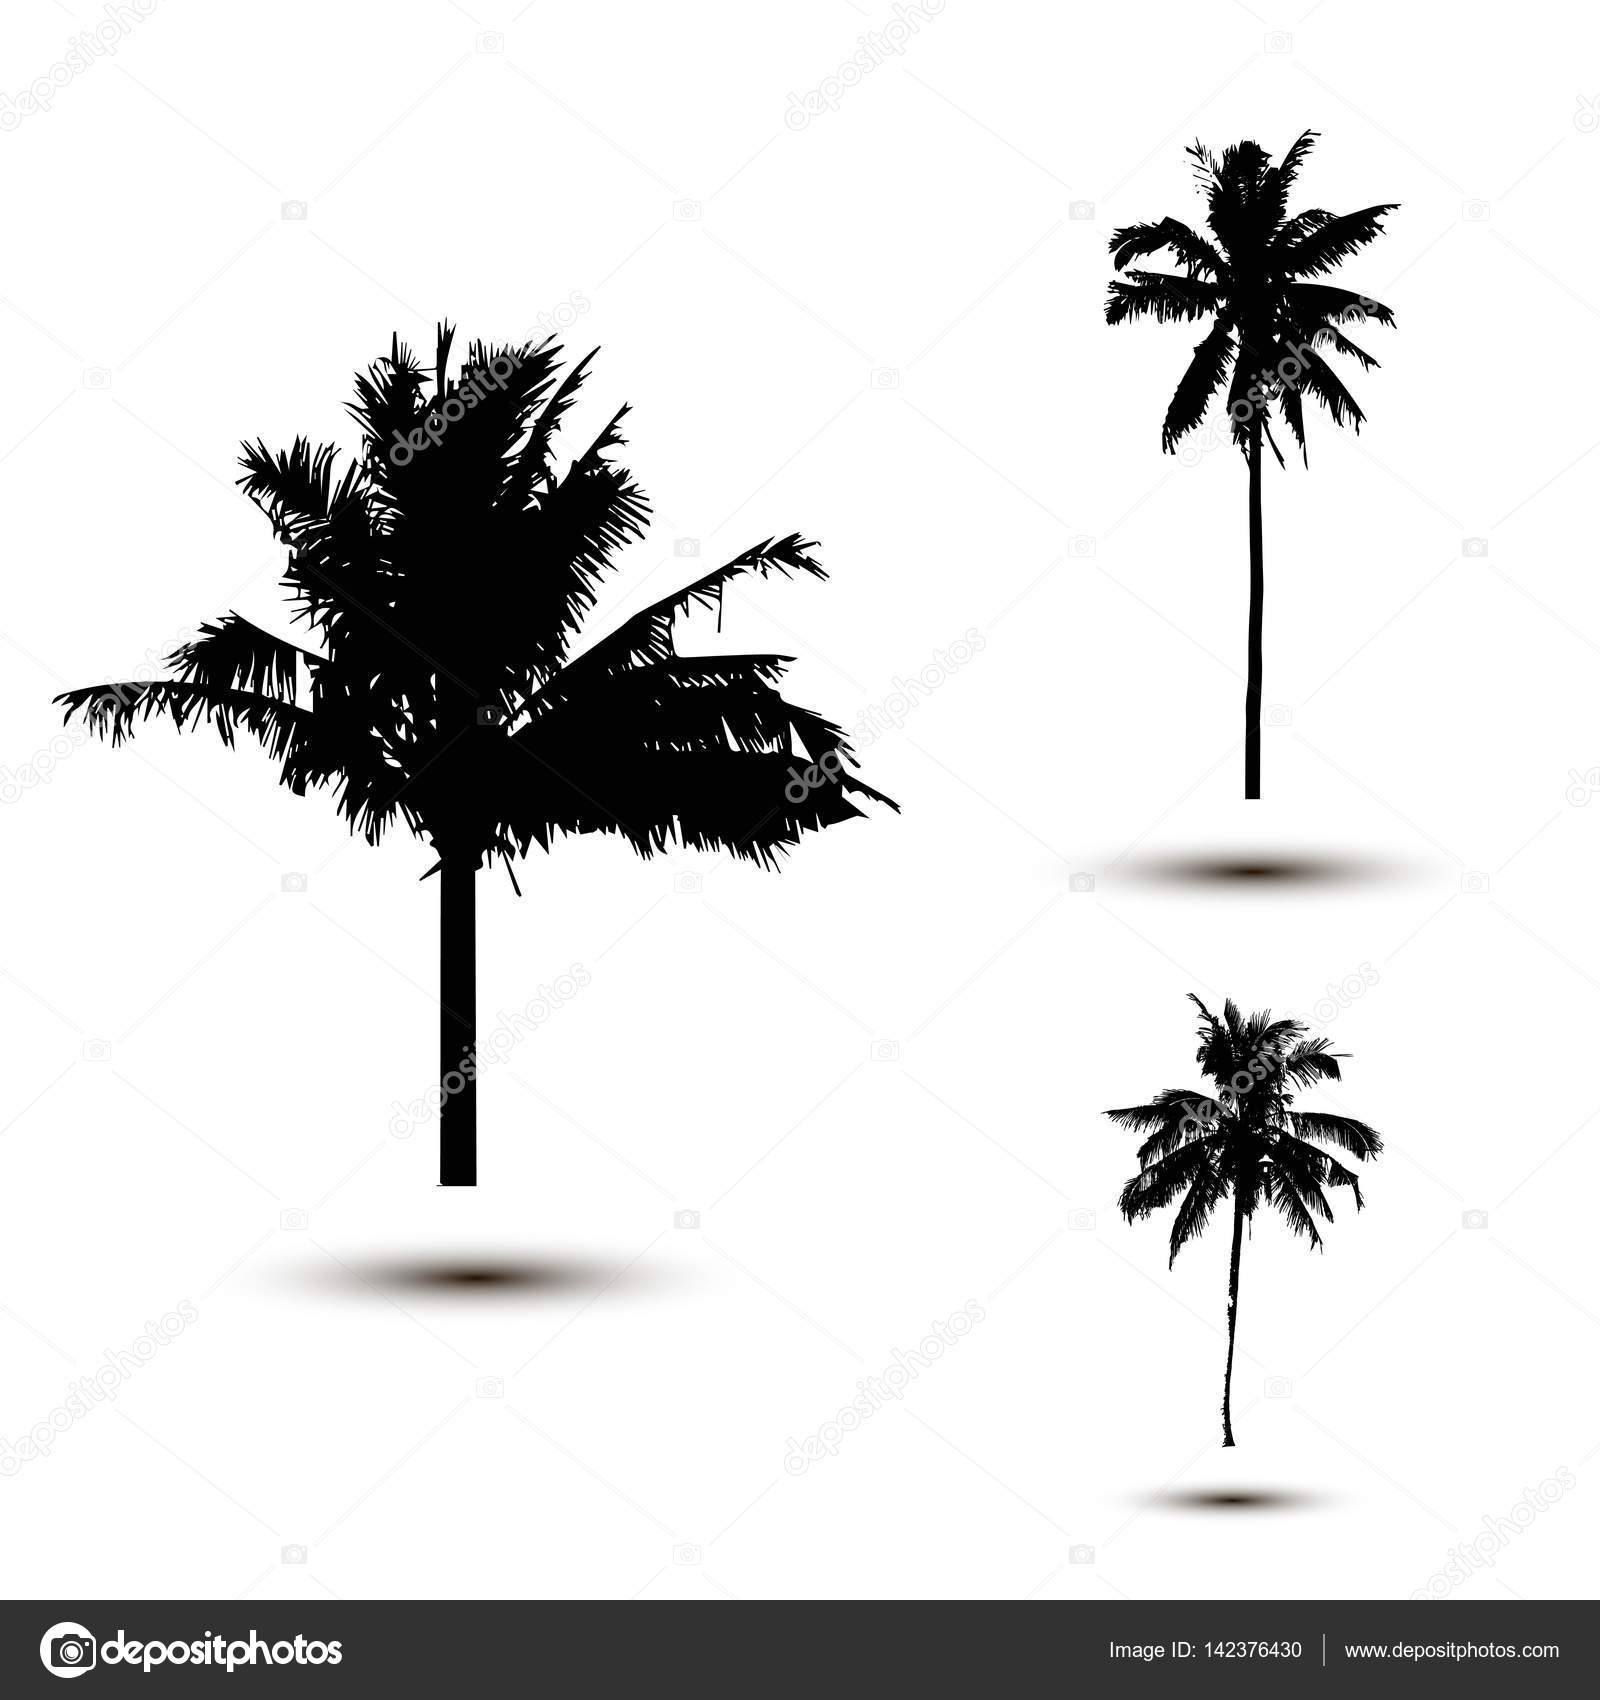 Realistic SilhouetteTropical Coconut Palm Tree Black Silhouettes